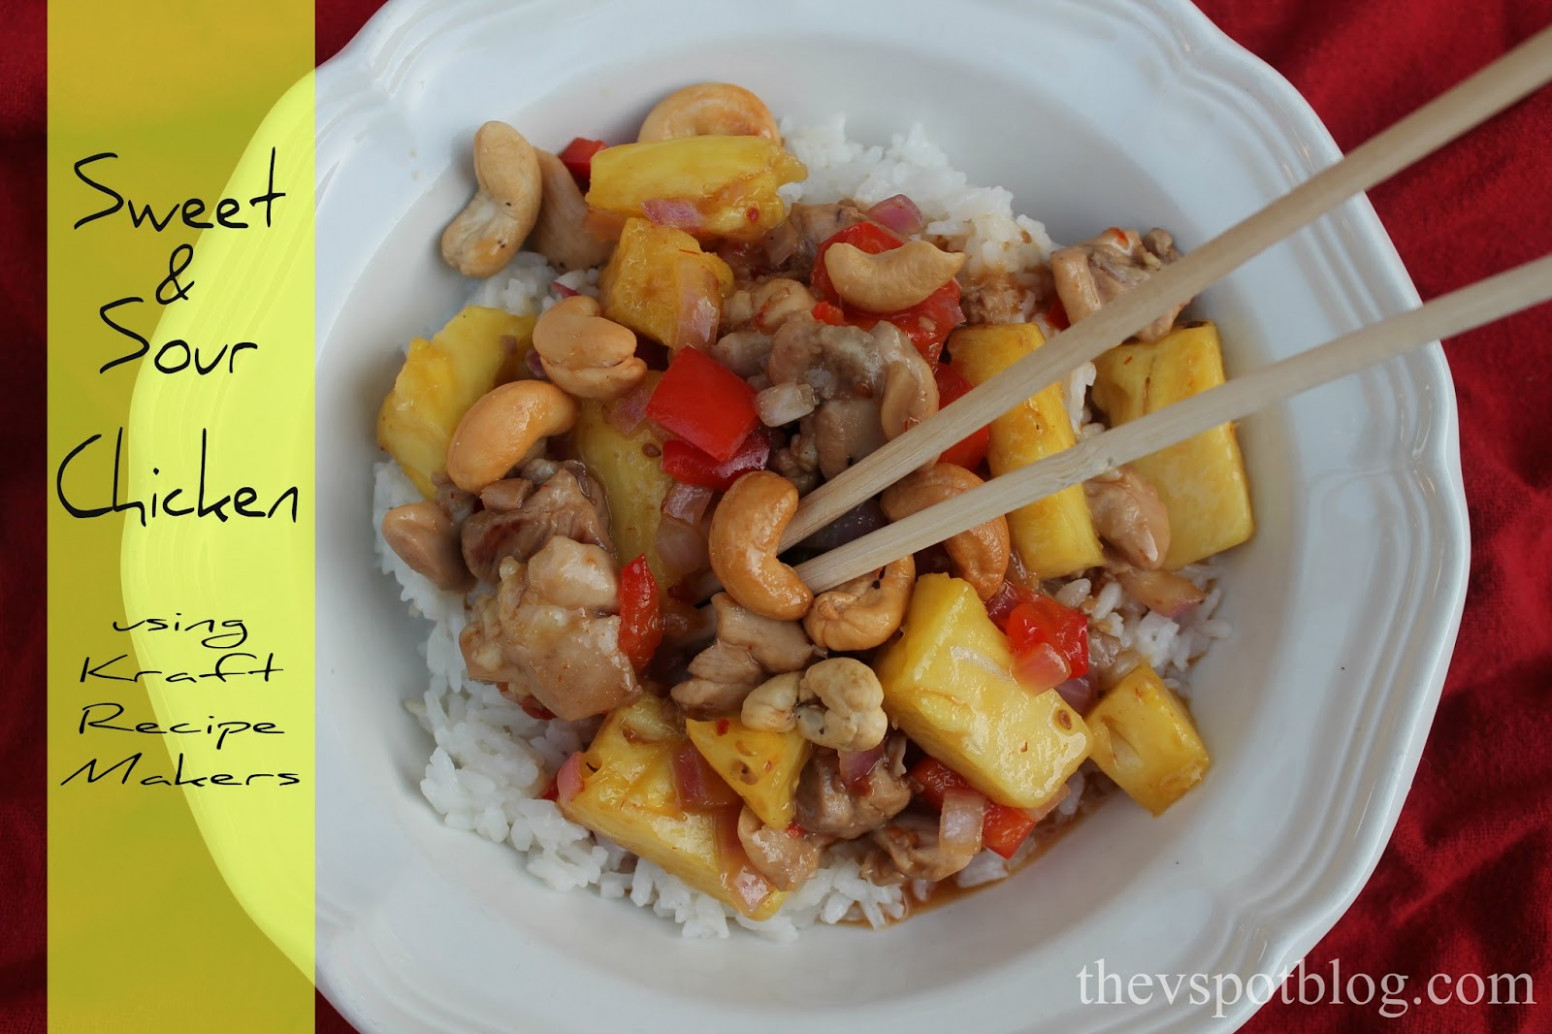 Sweet & Sour Chicken with Kraft Recipe Makers | The V Spot